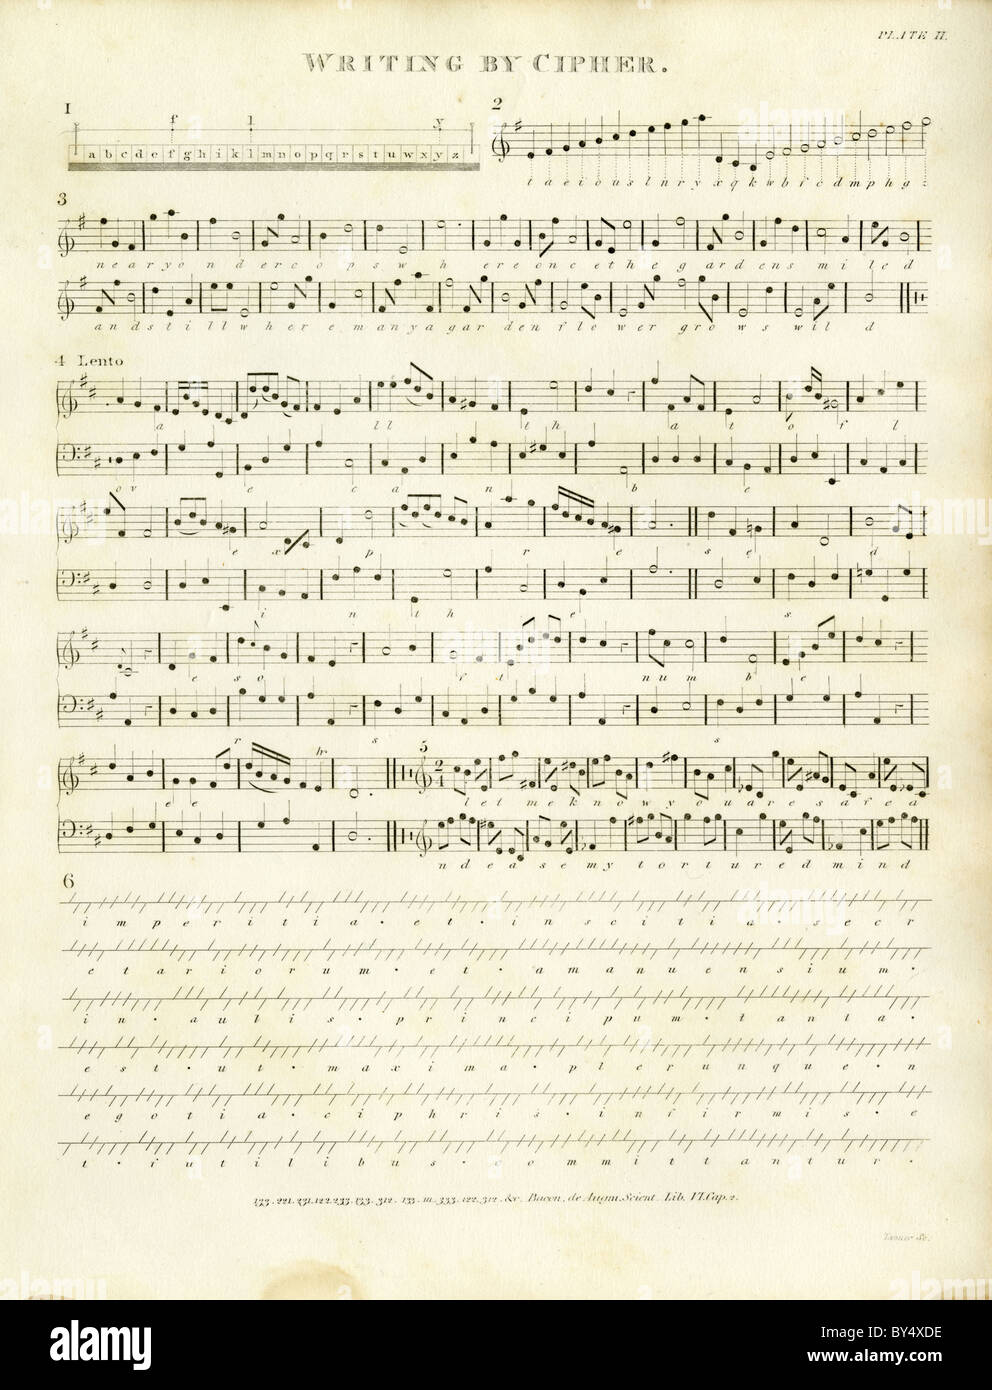 """1820 engraving, """"Writing by Cipher"""" showing a musical code for a poem. Stock Photo"""